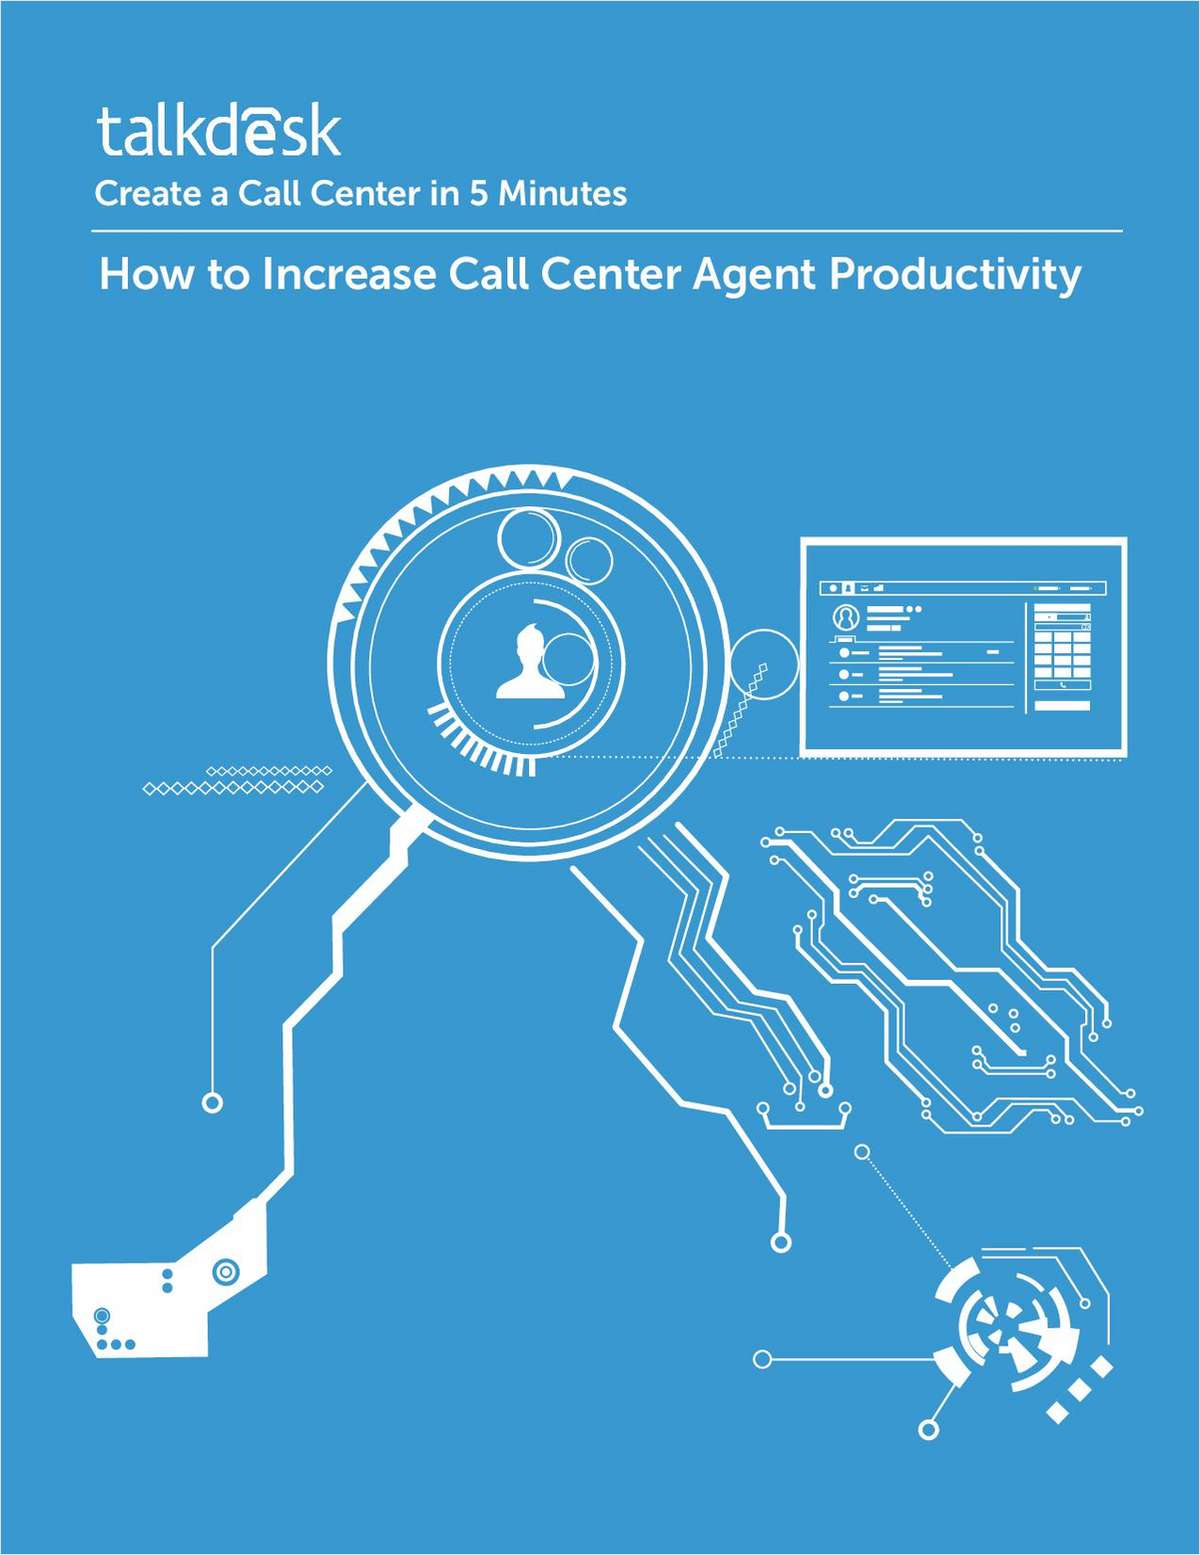 How to Increase Call Center Agent Productivity